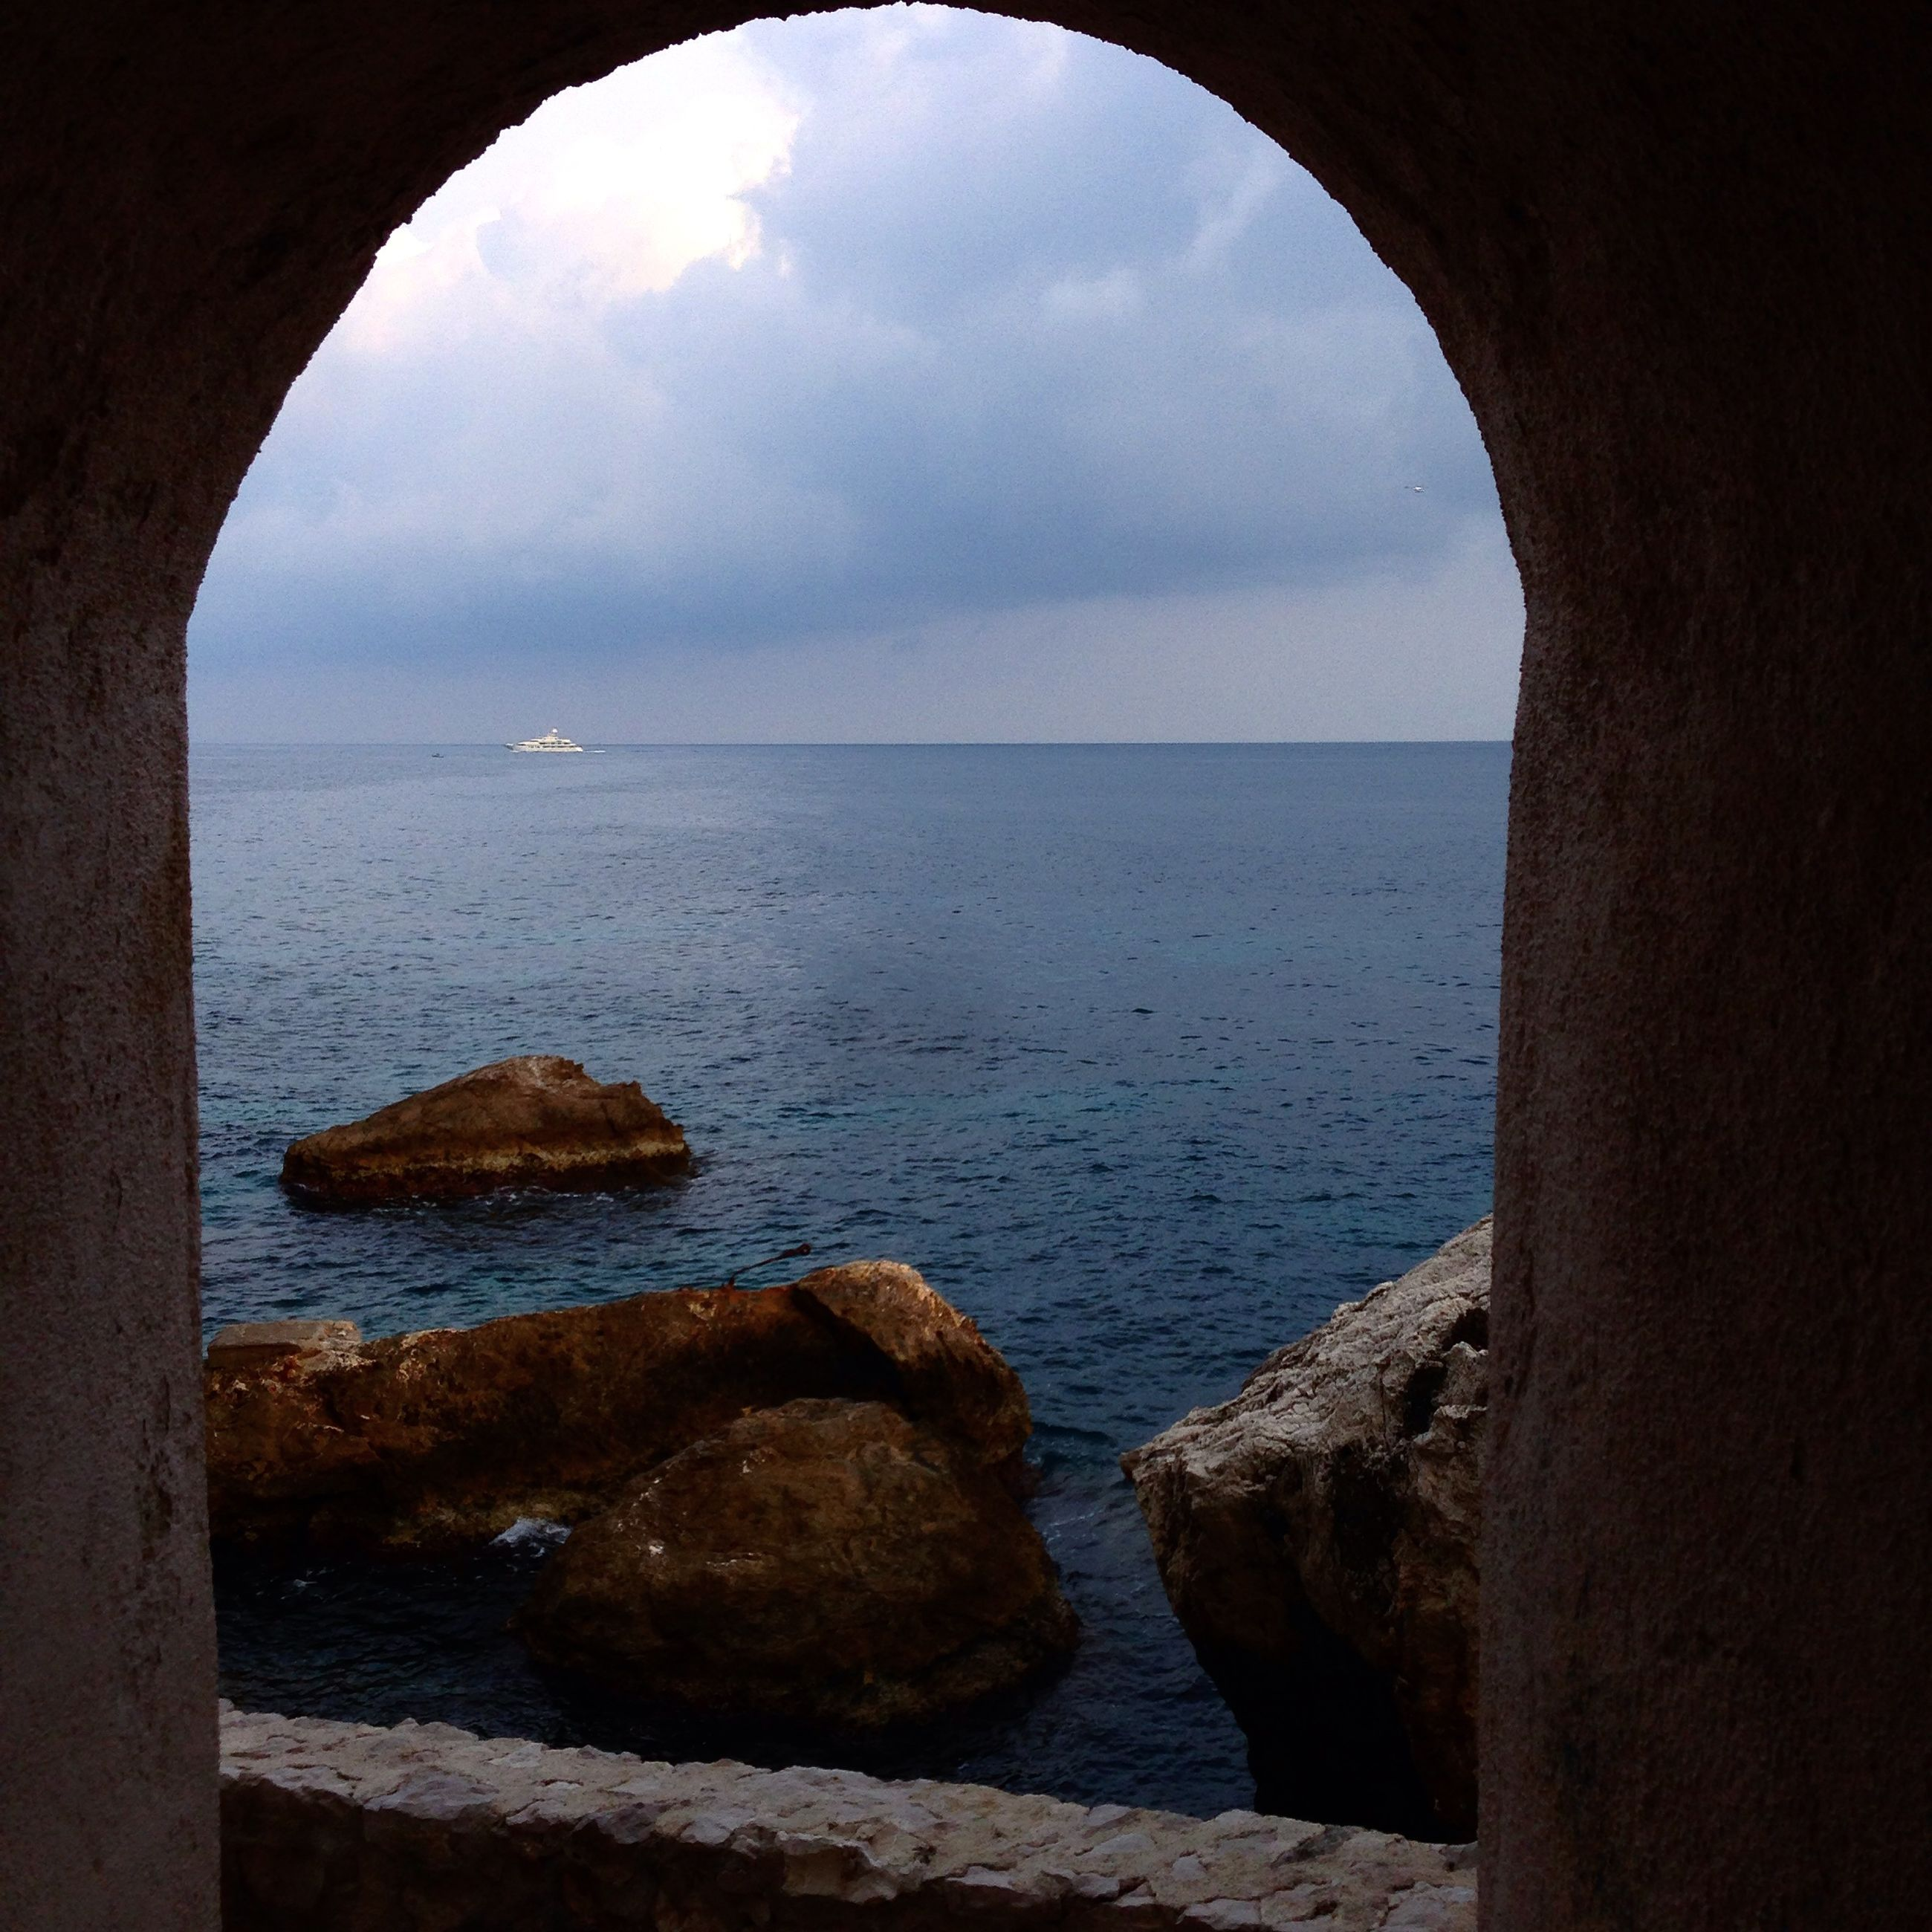 sea, sky, horizon over water, water, arch, indoors, tranquility, cloud - sky, scenics, tranquil scene, built structure, beauty in nature, nature, cloud, architecture, beach, rock - object, idyllic, day, cloudy